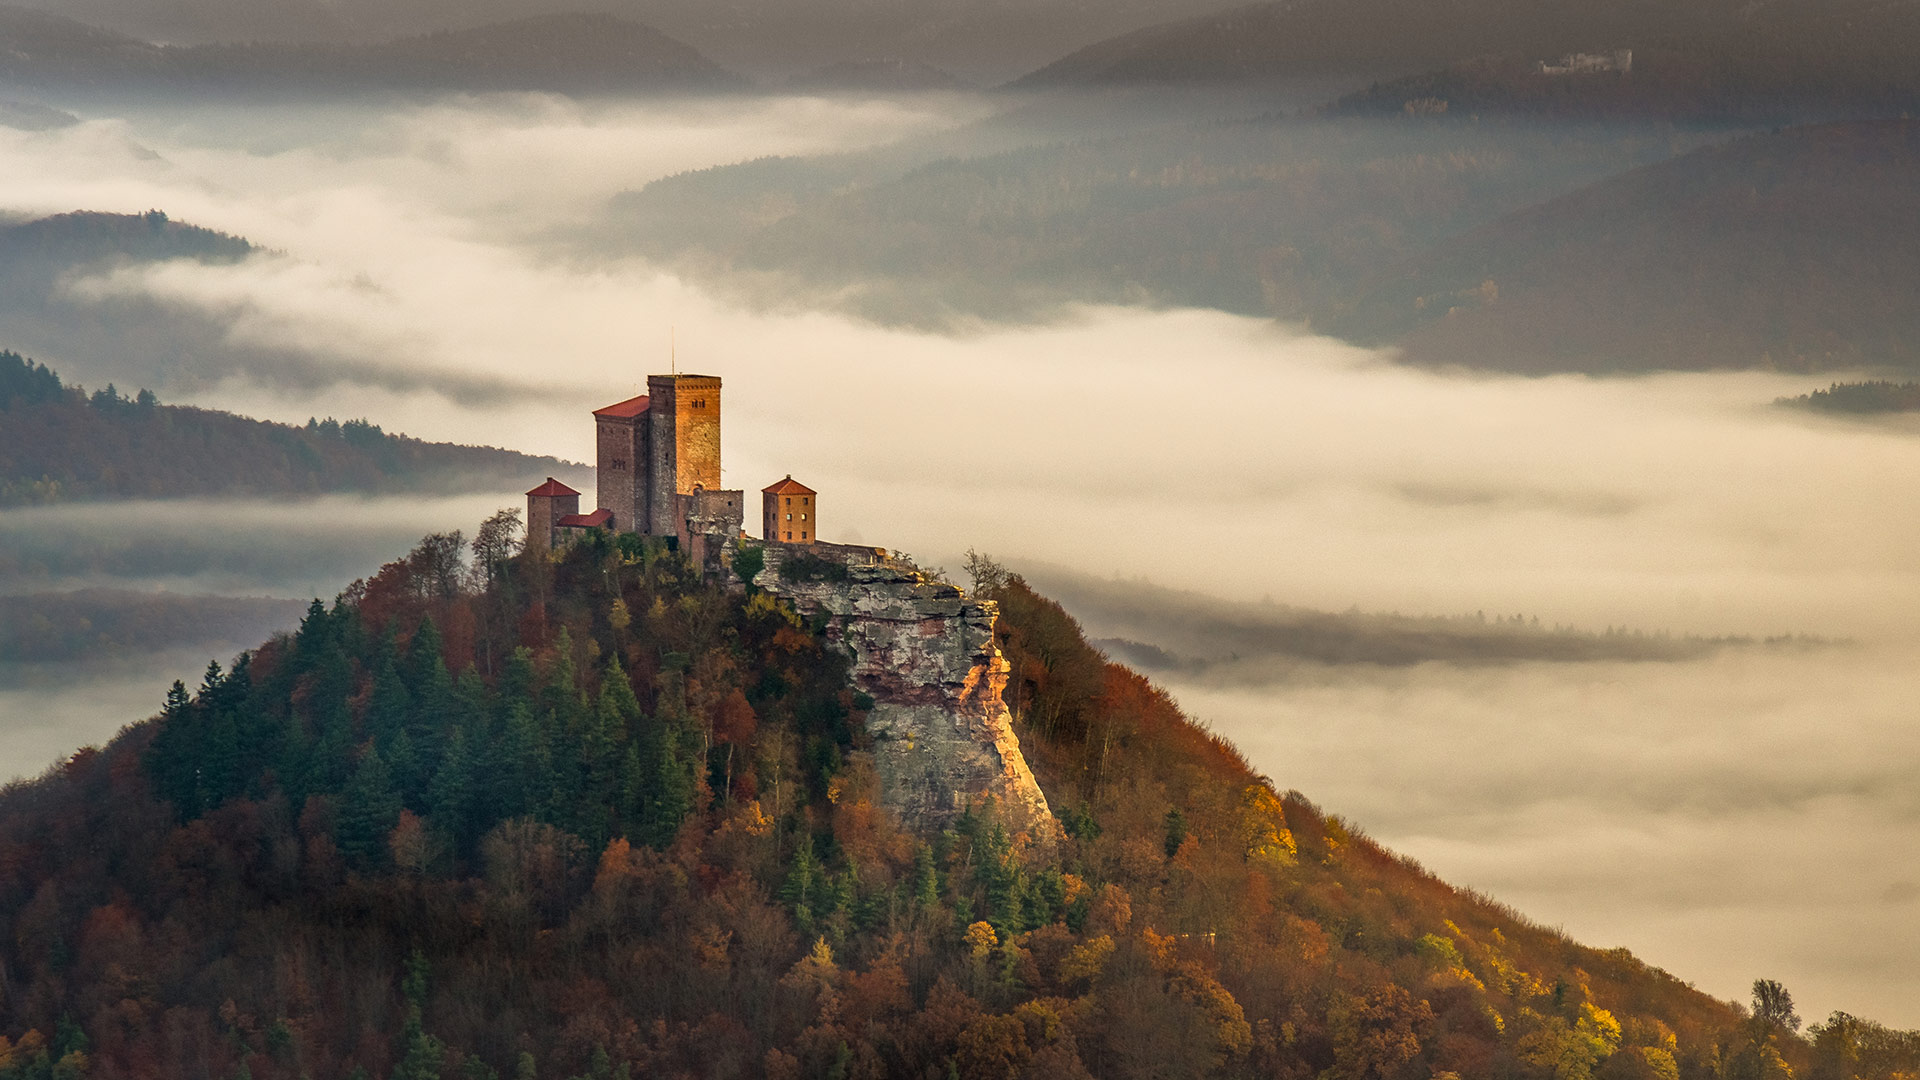 Trifels Castle in the Palatinate Forest, Rhineland-Palatinate, Germany (© Björn Lauer/Getty Images)